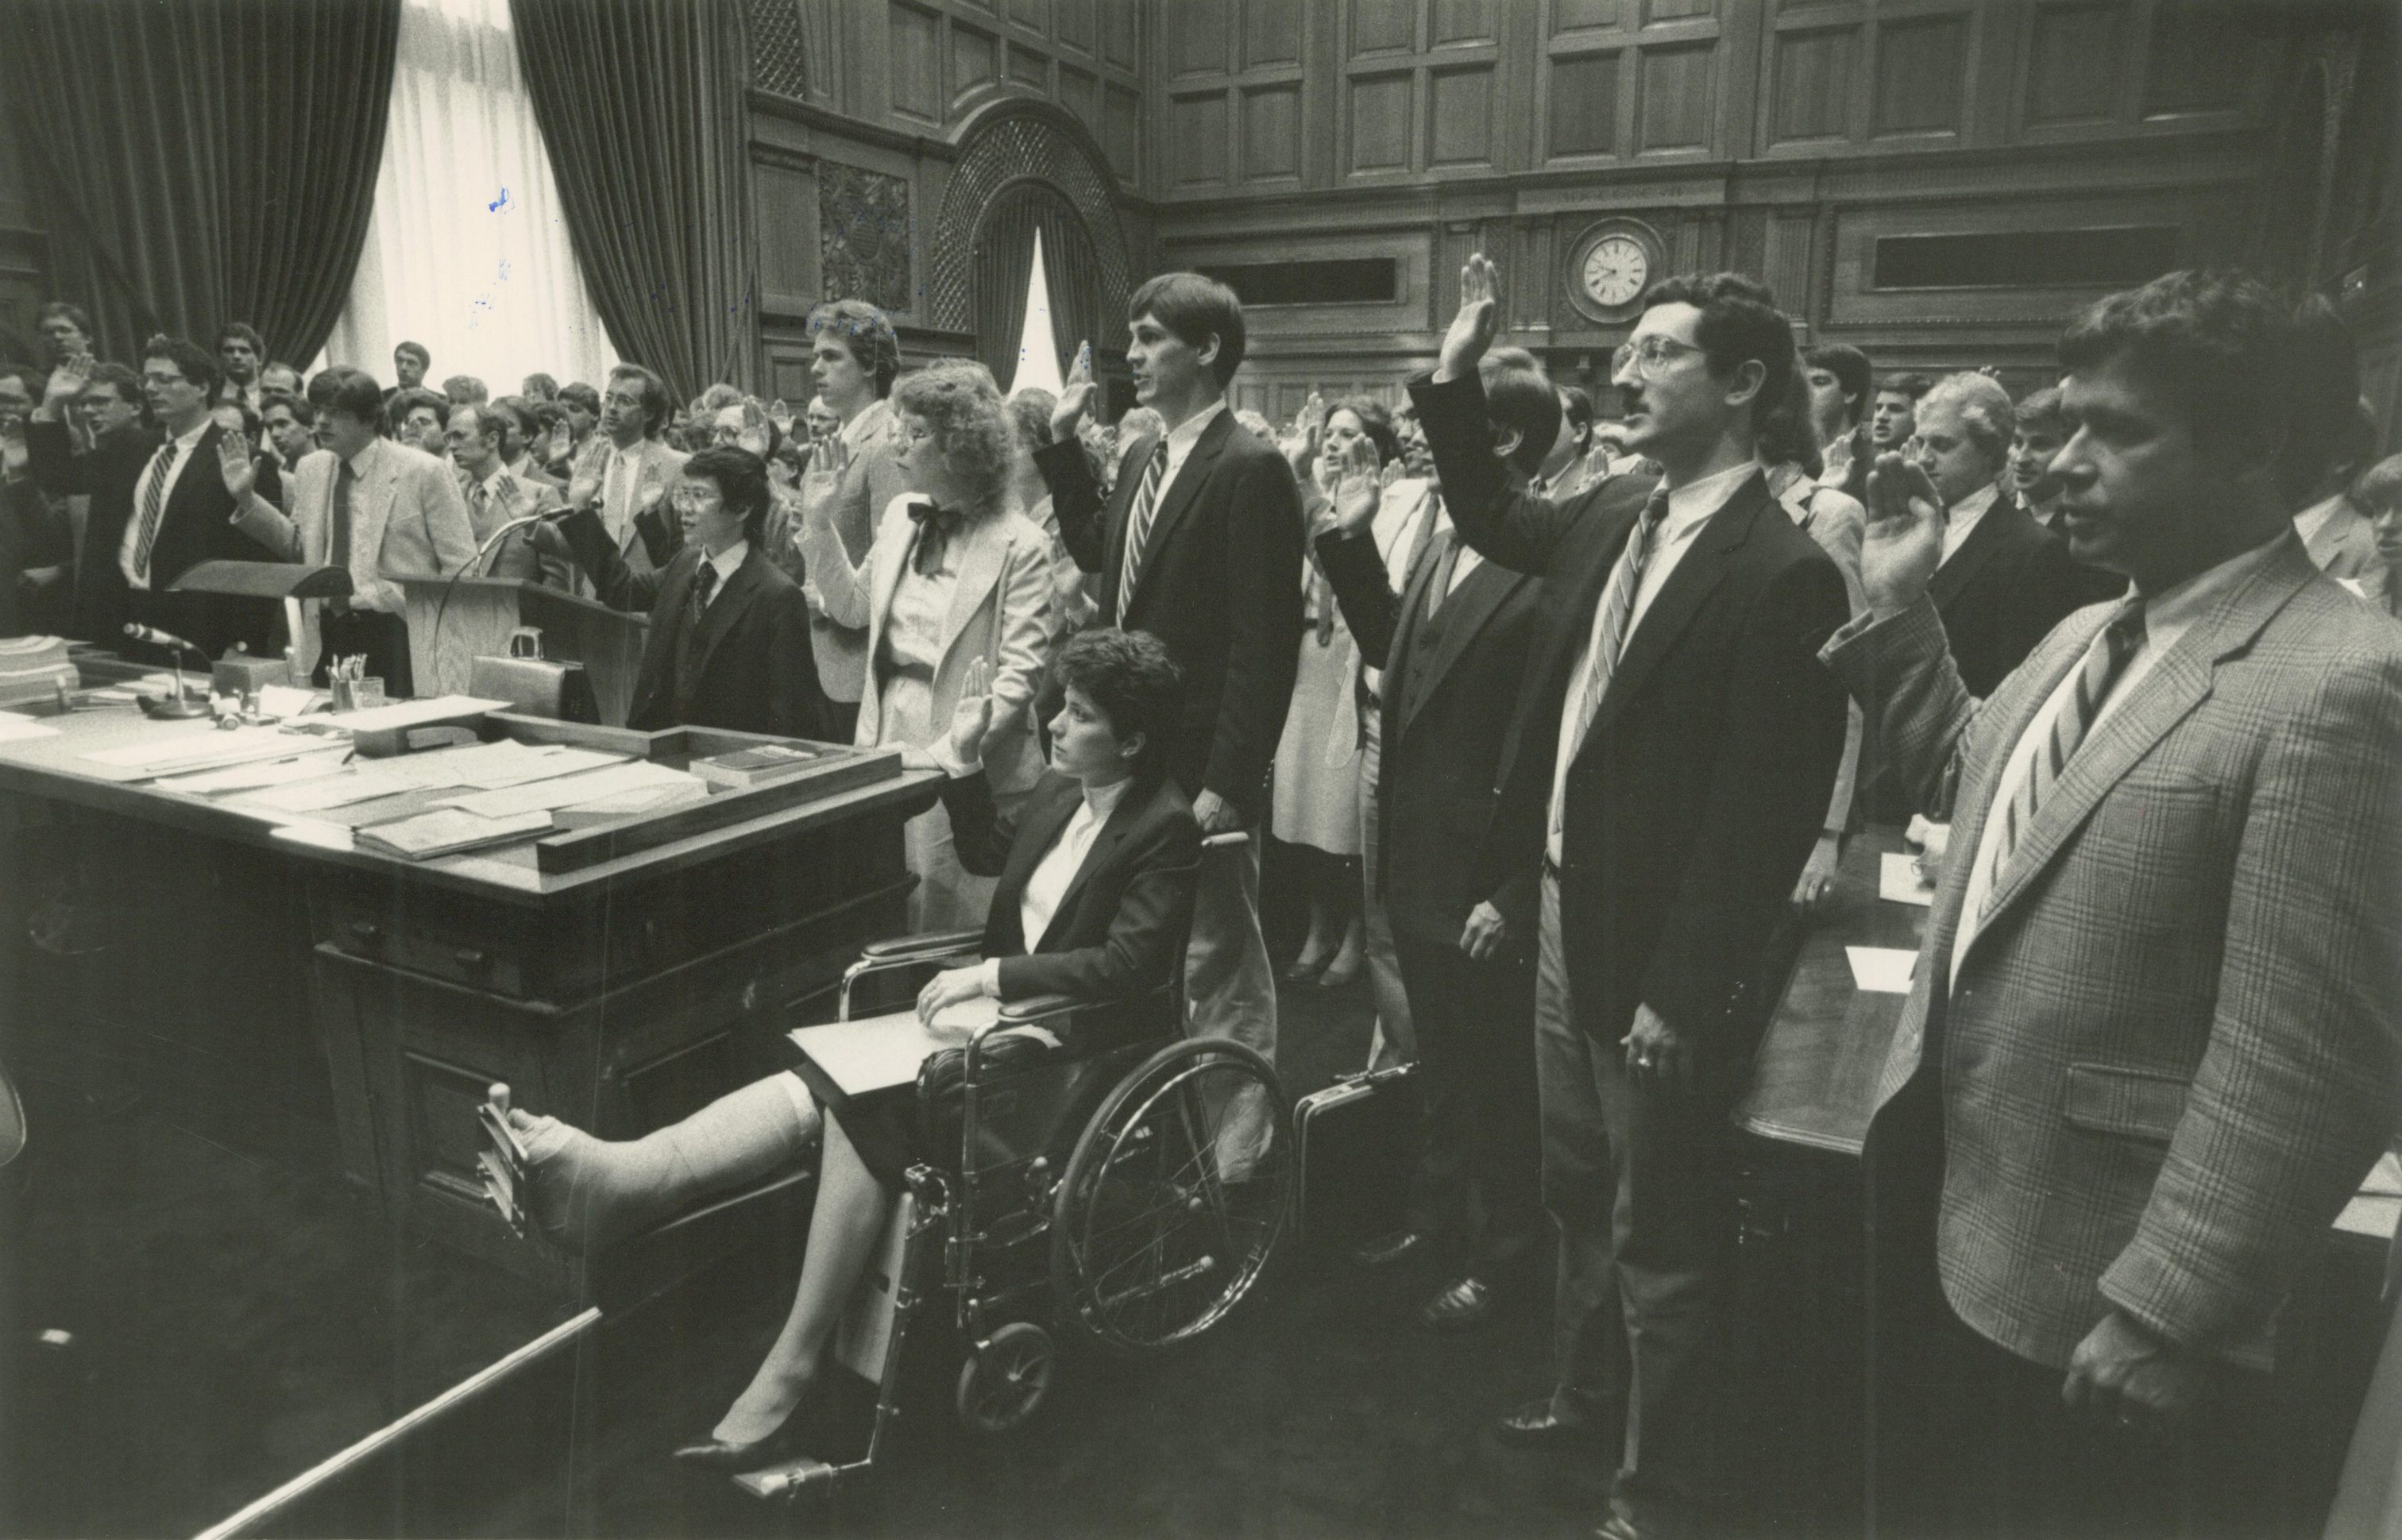 A group of Milwaukee lawyers are being sworn in in this photo from 1984.